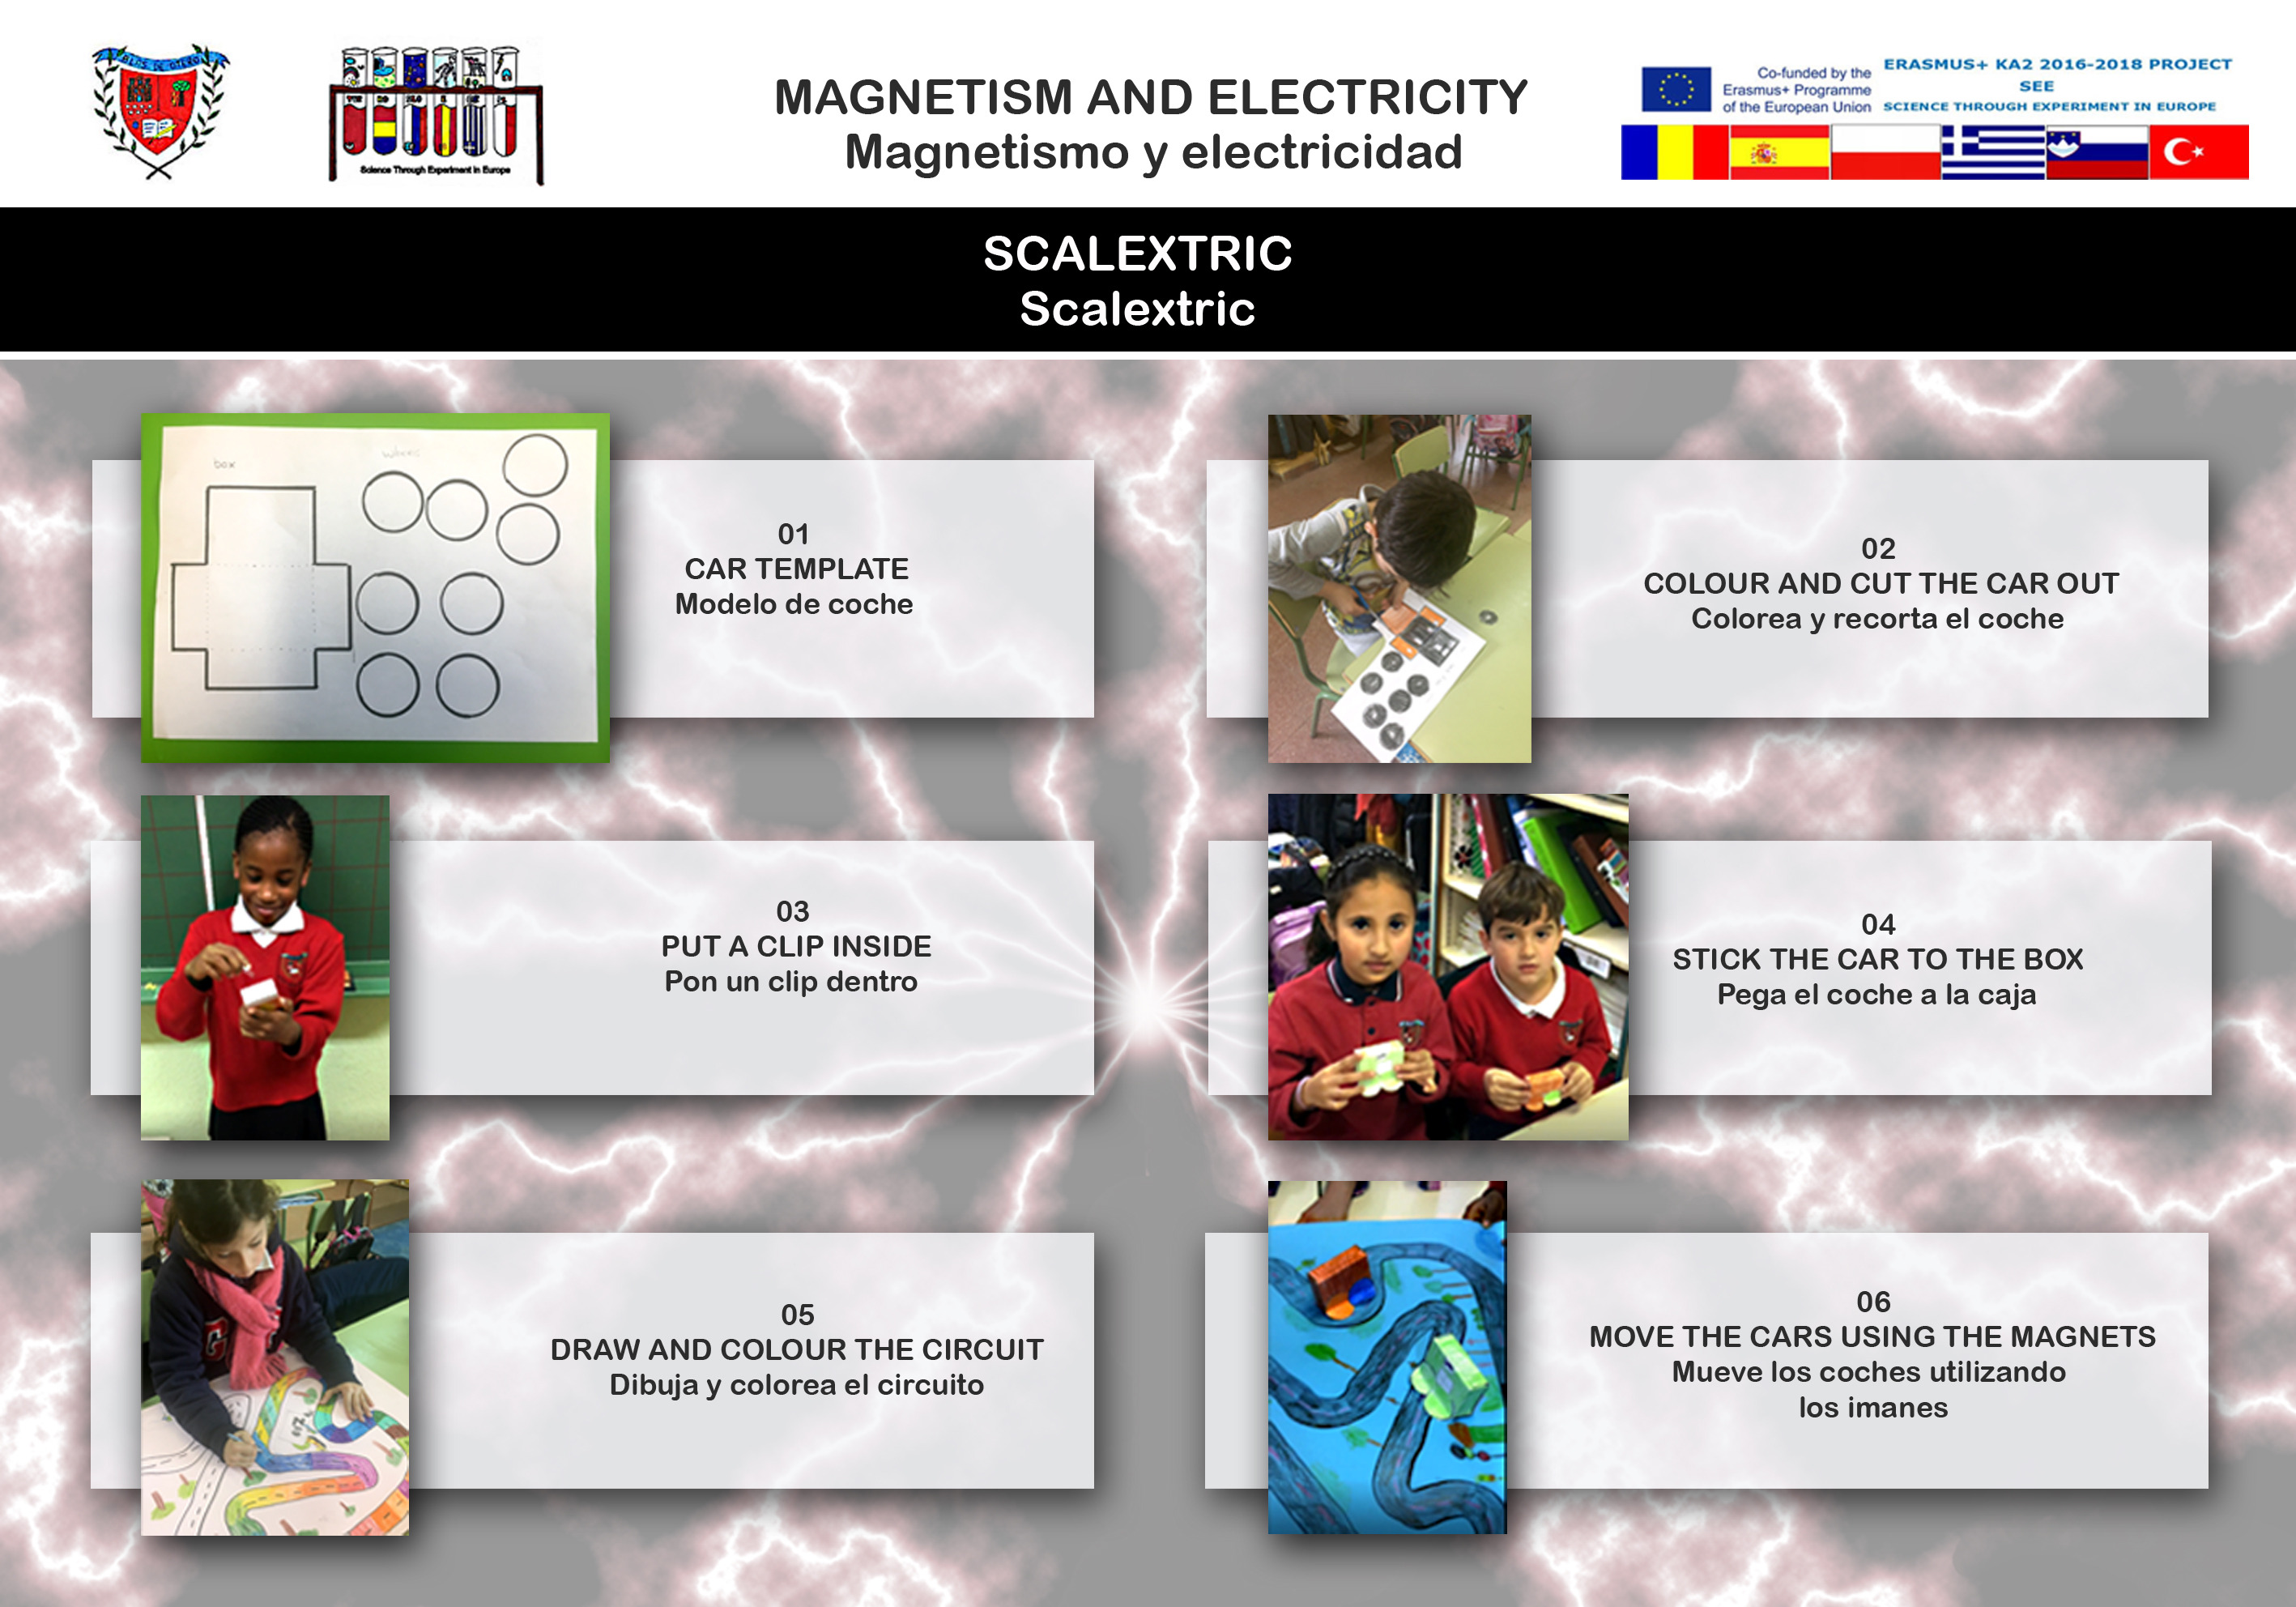 Magnetism and electricity experiment 01 Scalextric